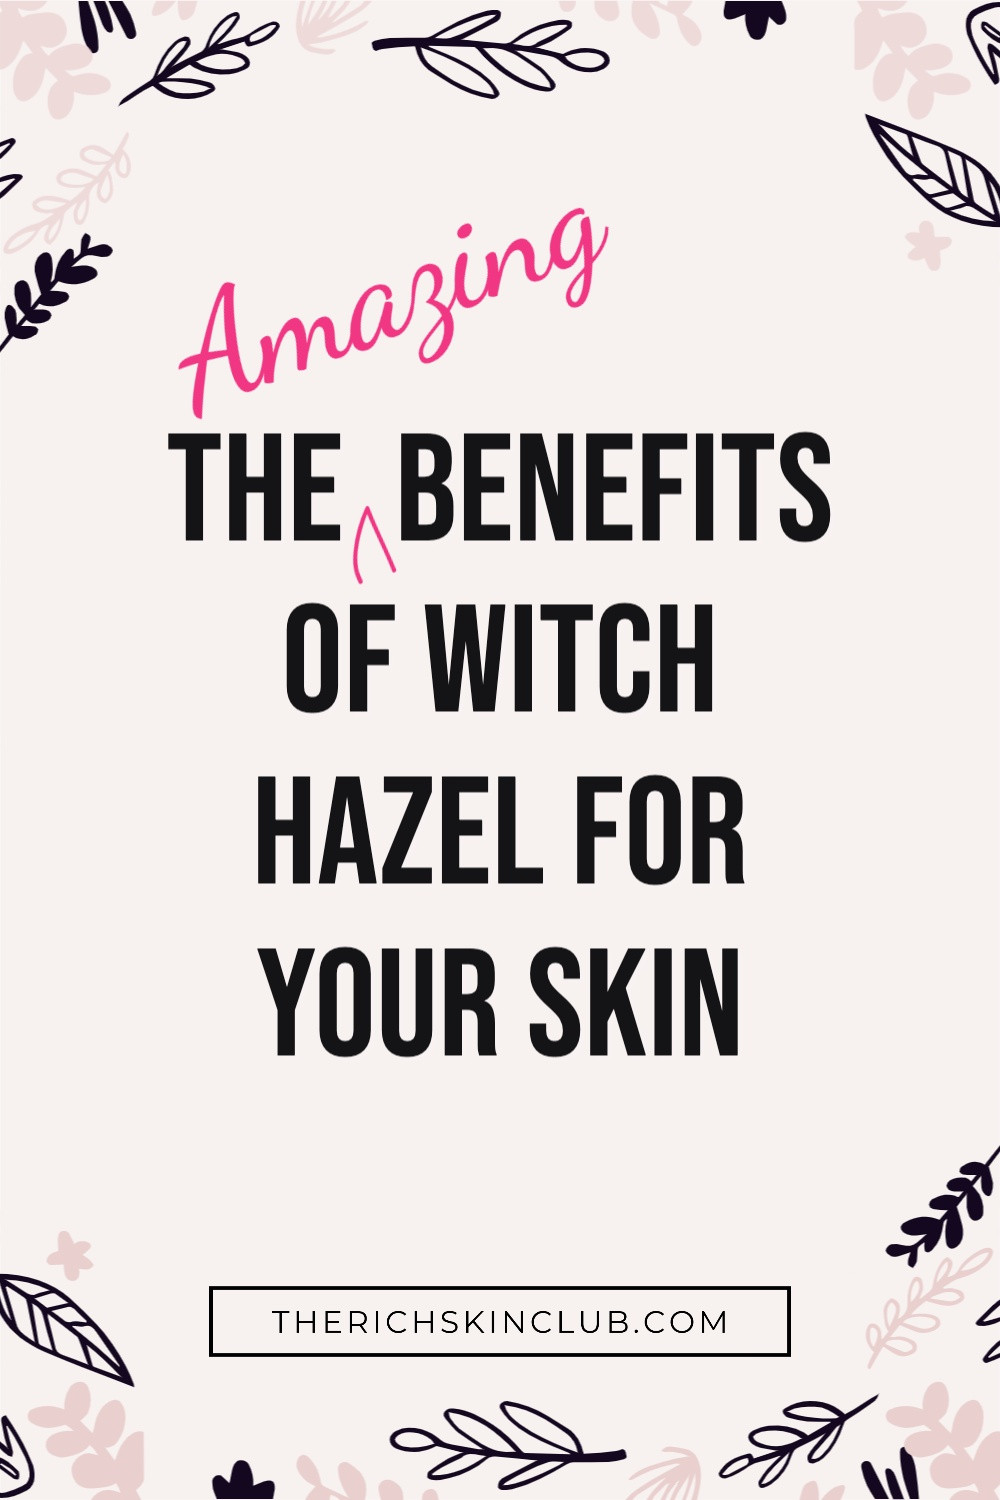 The benefits of Witch hazel add up to a trifecta of skin perks that tighten skin/refine pores, reduce inflammation, and treat acne. It's a natural astringent, meaning it has a skin tightening effect, that minimizing pores making them appear smaller. This is especially beneficial for oily and acne-prone skin types. #BenefitsOfWitchHazel  #ThayersWitchHazel  #RoseWaterToner #WitchHazelUsesSkinCare  #AlcoholFreeToner  #TheRichSkinClub  #CleanBeauty